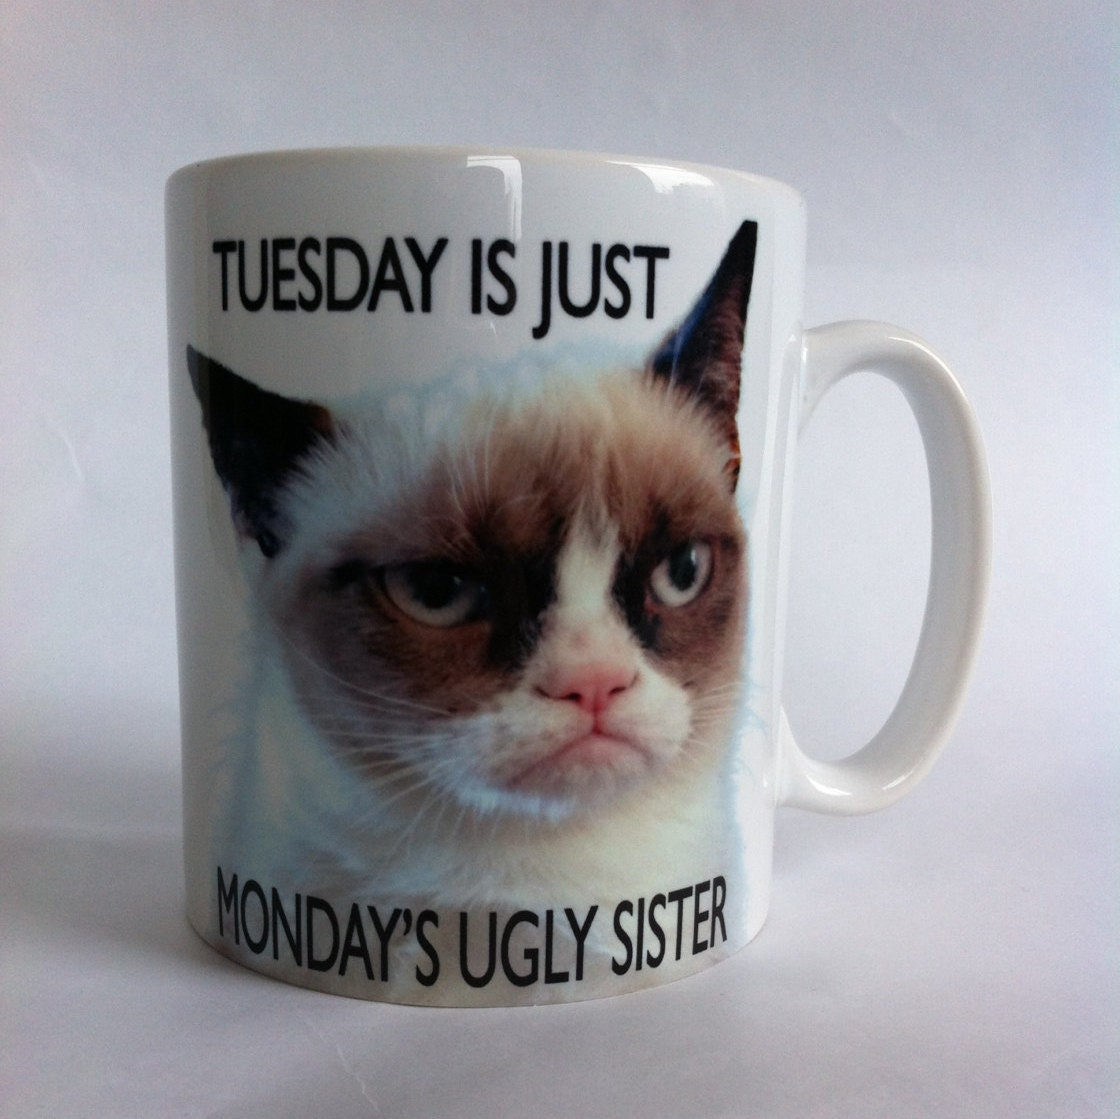 Grumpy cat tuesday is just monday's ugly sister mugs